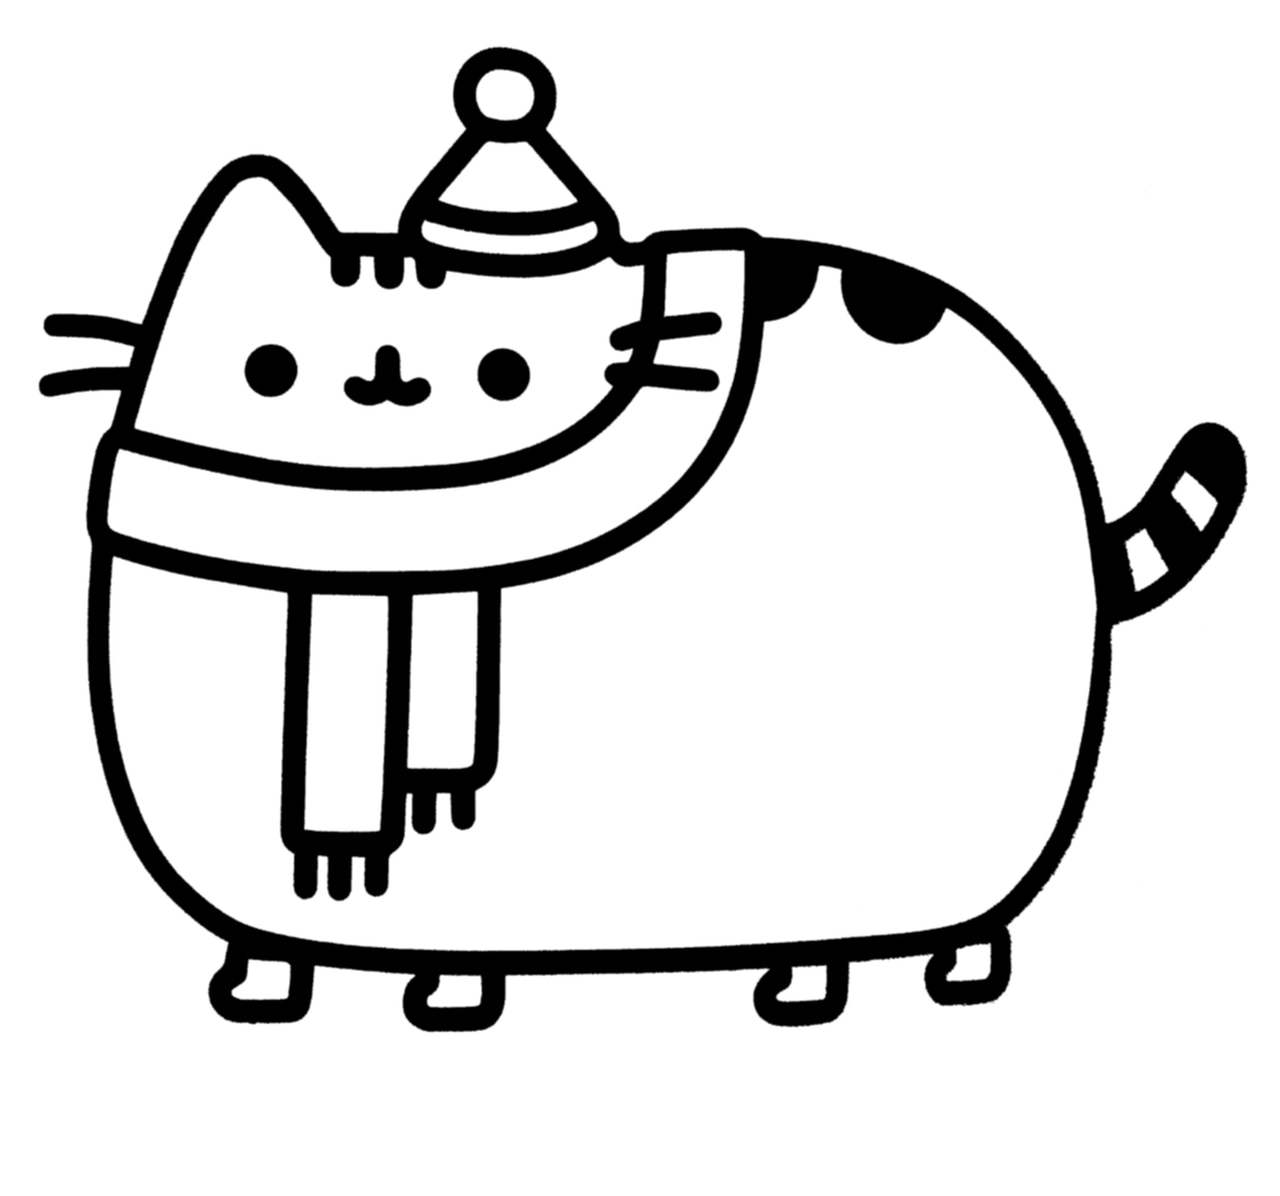 pusheen the cat coloring pages pusheen the cat coloring pages cat pusheen pages the coloring